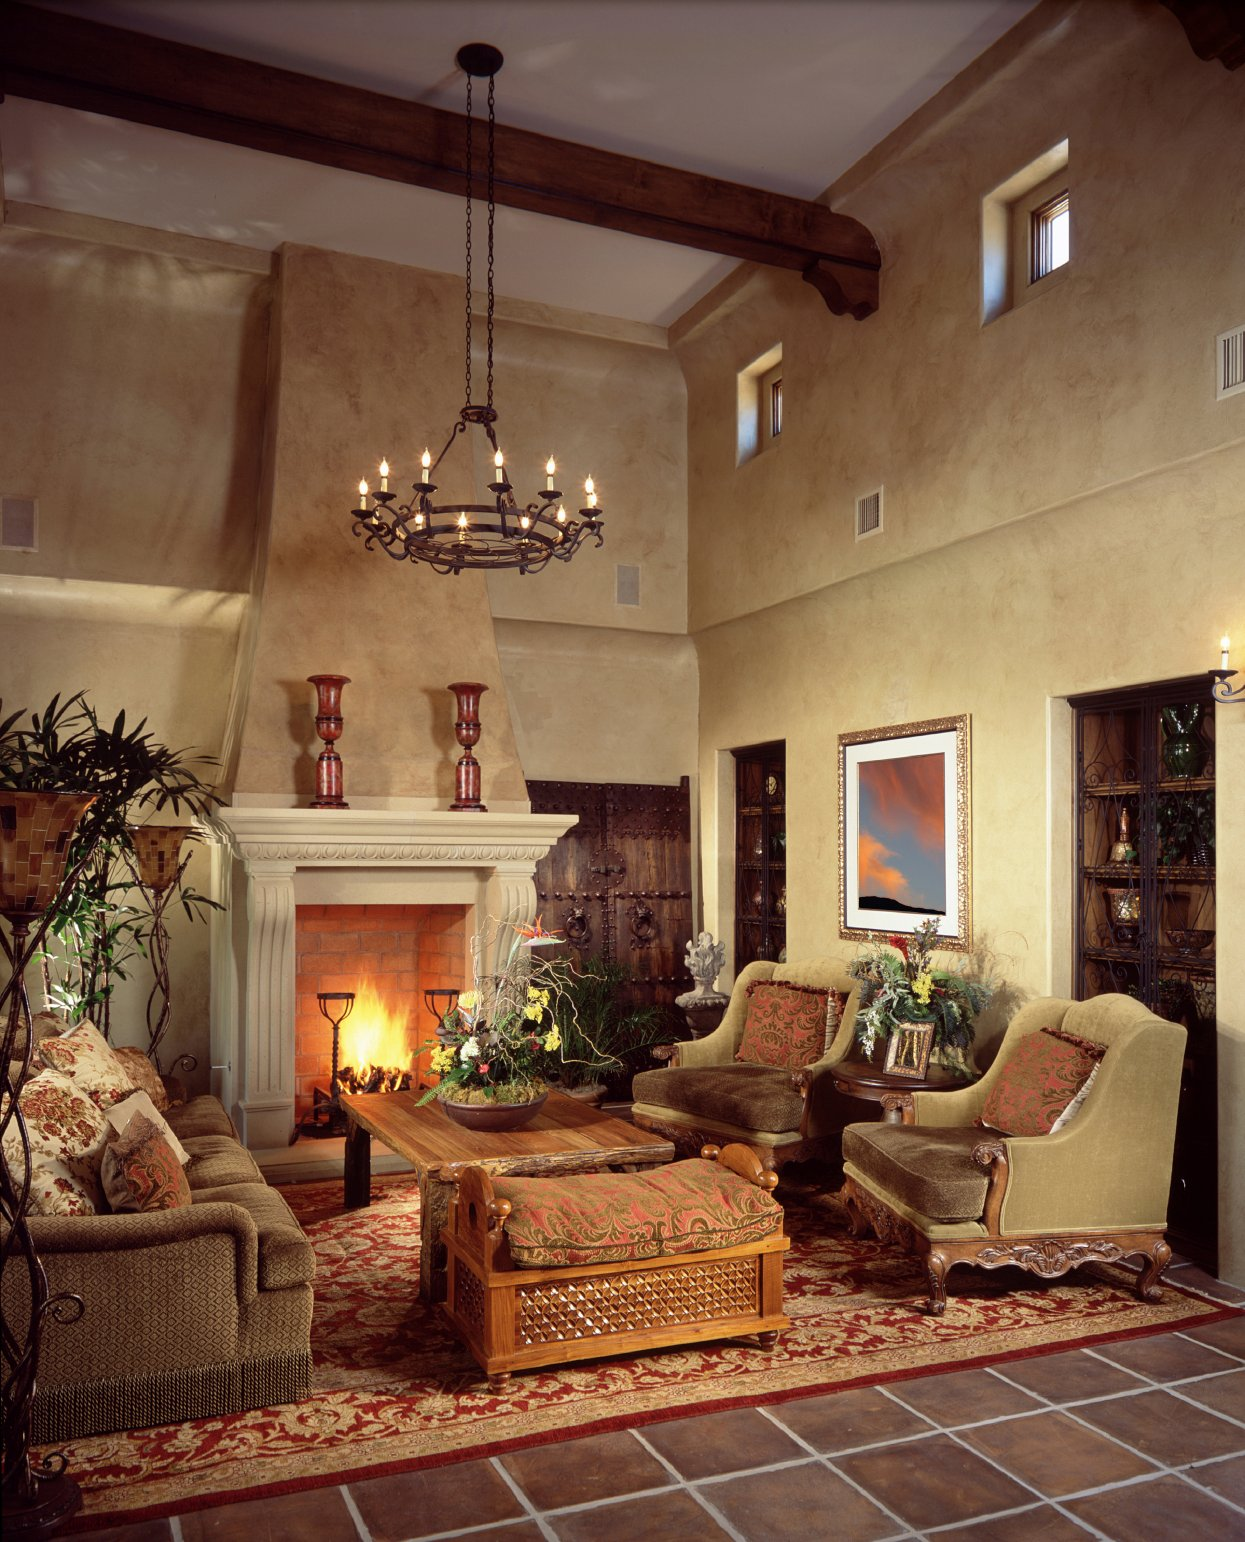 Tall yet cozy space here features natural carved wood coffee table surrounded by plush chairs and sofa and large white marble fireplace. Old fashioned chandelier hangs from exposed wood beam overhead, while red patterned area rug sits on brown tile flooring.